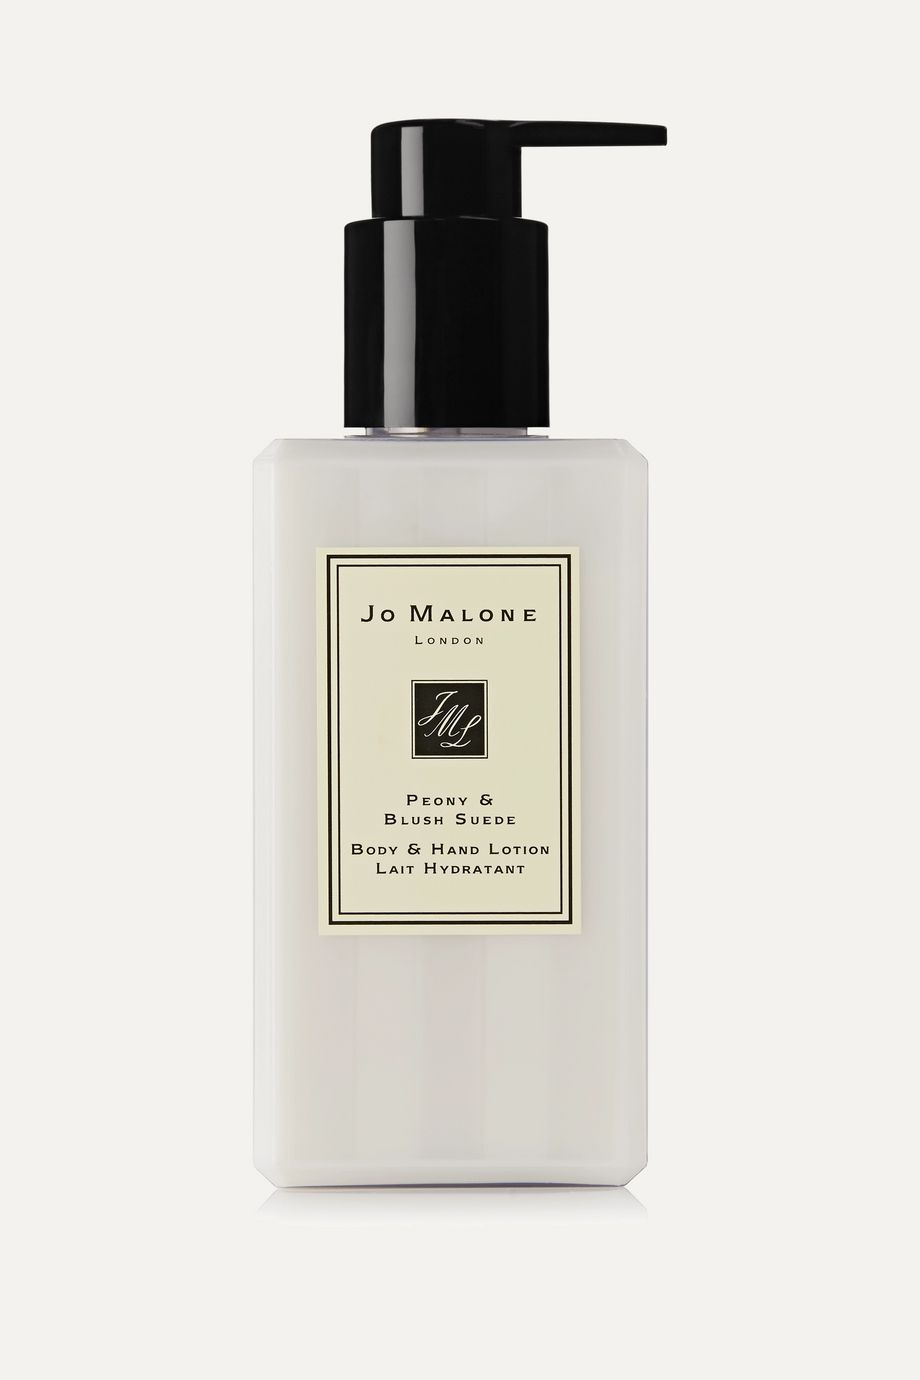 Jo Malone London Peony & Blush Suede Body & Hand Lotion, 250ml